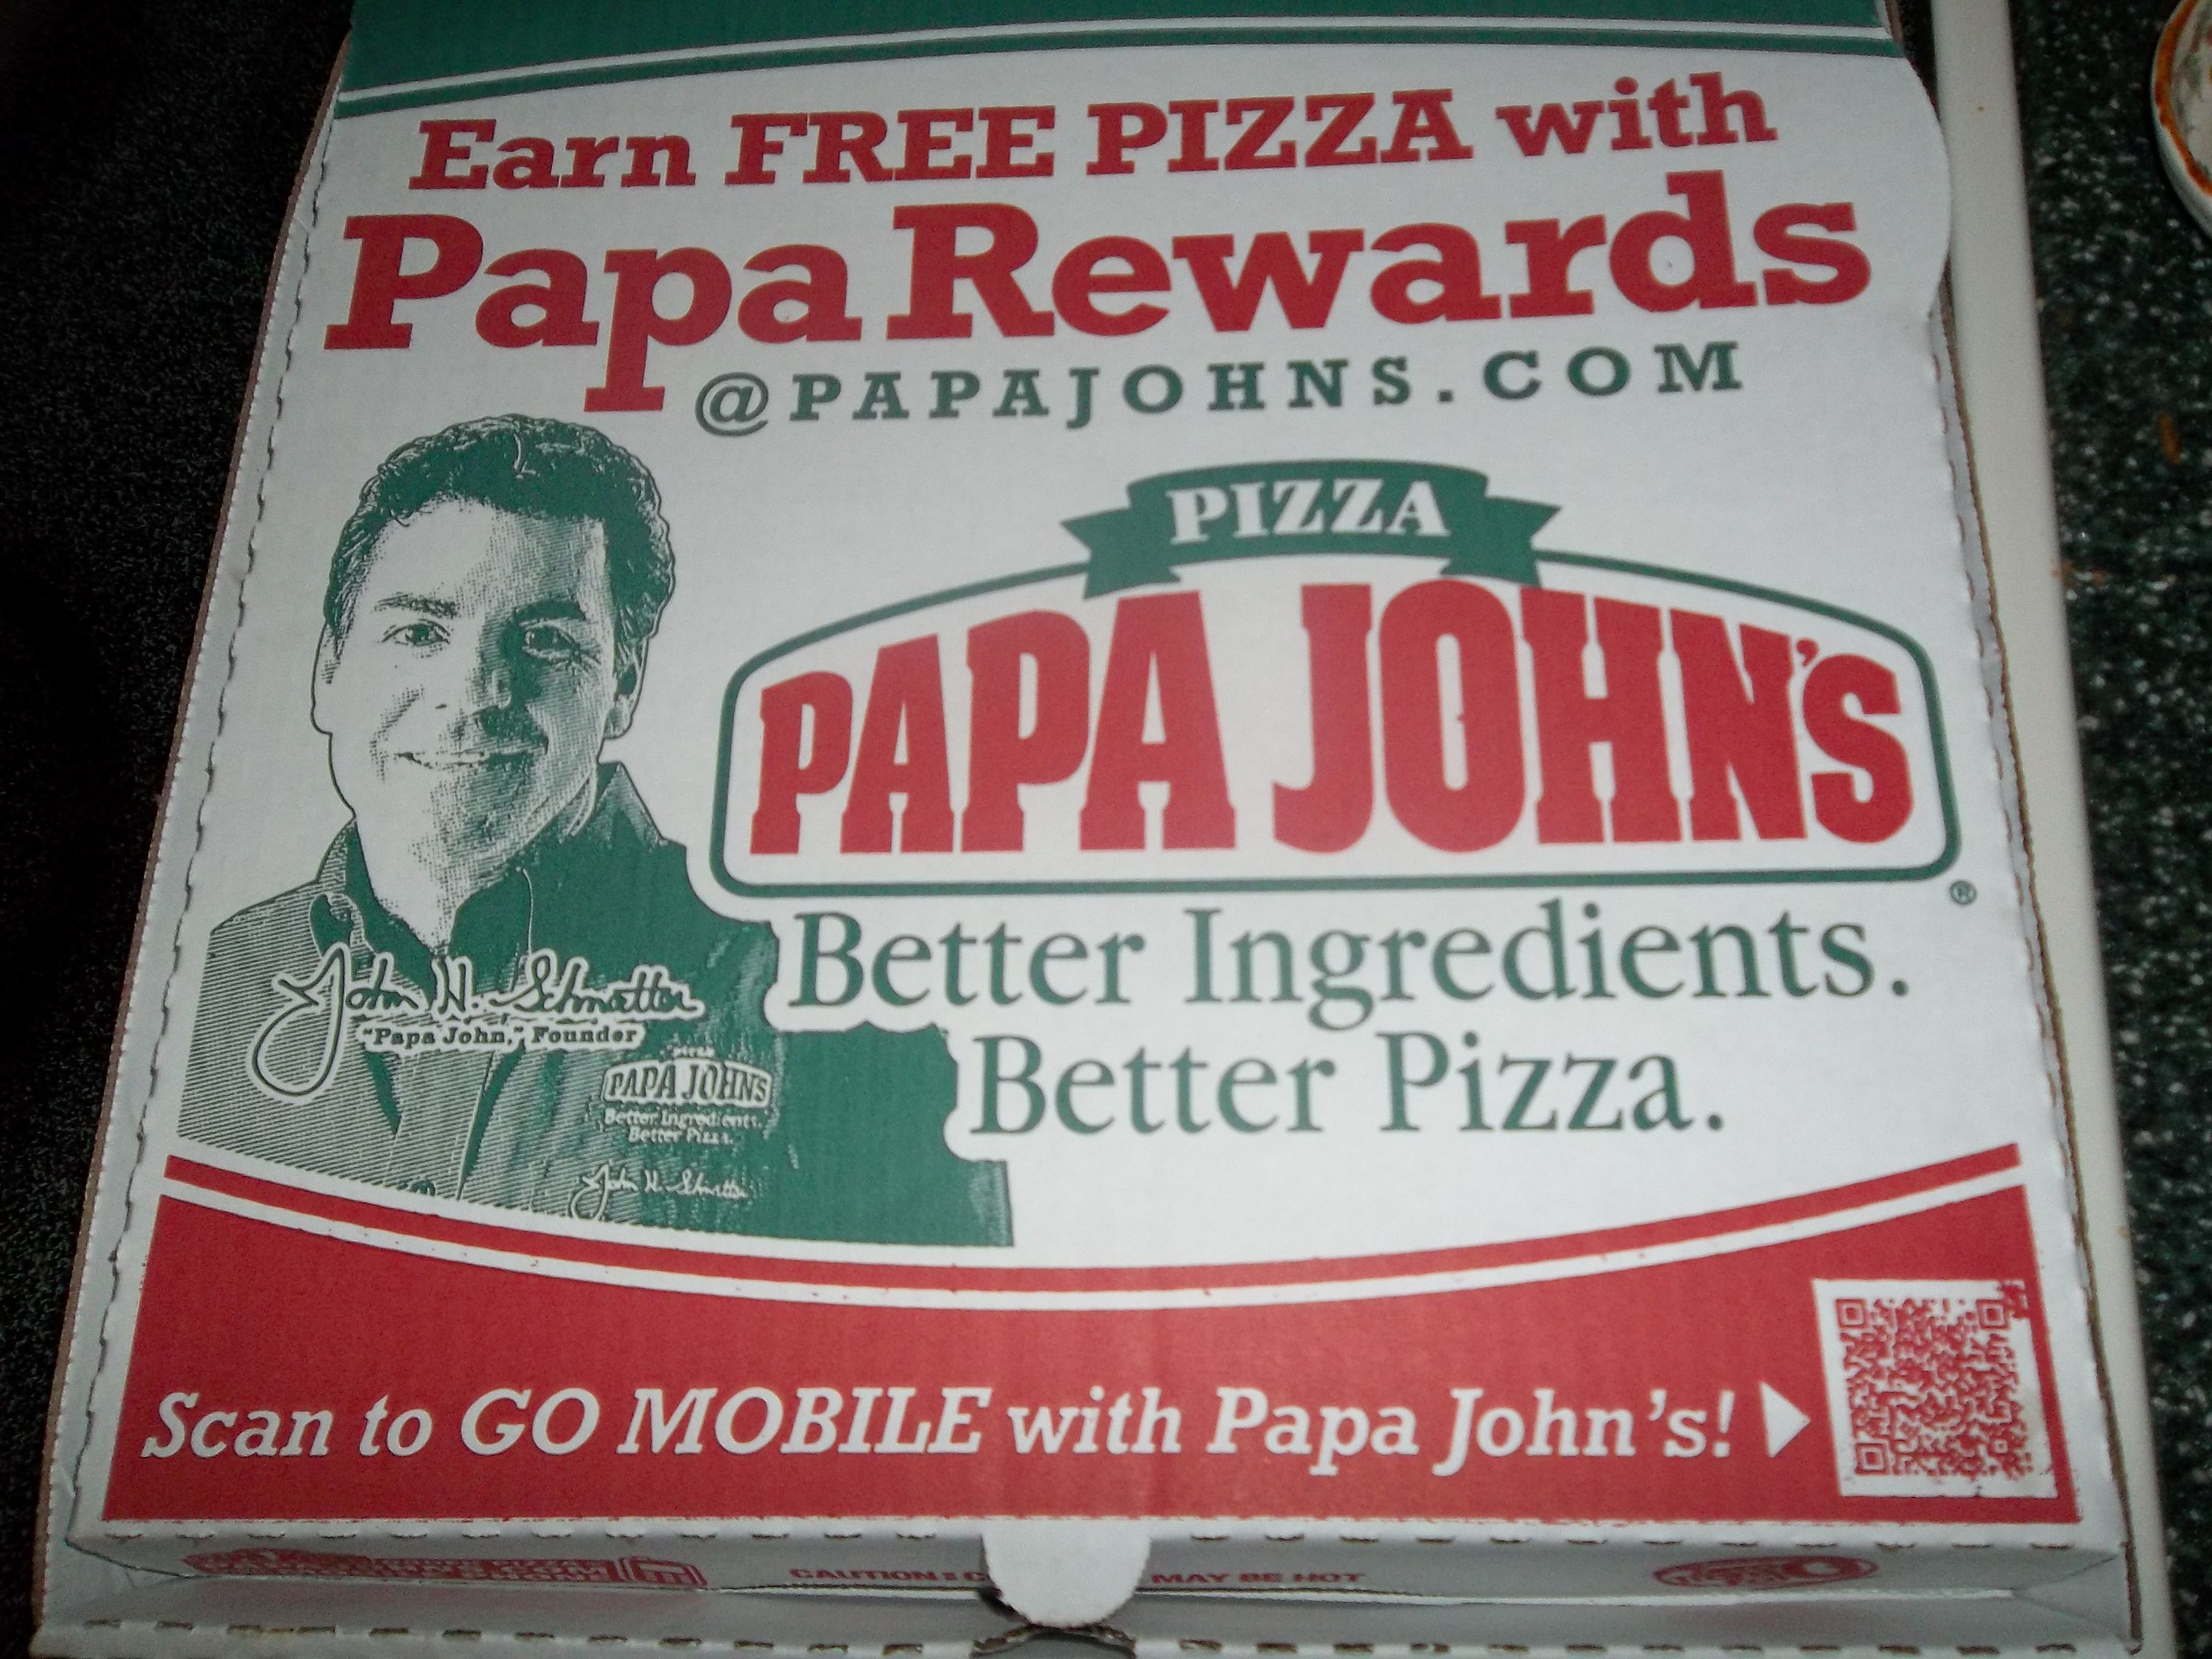 6.28.12-Live at the Levee, and I almost passed out. To make up for it, I got Papa John's pizza :)